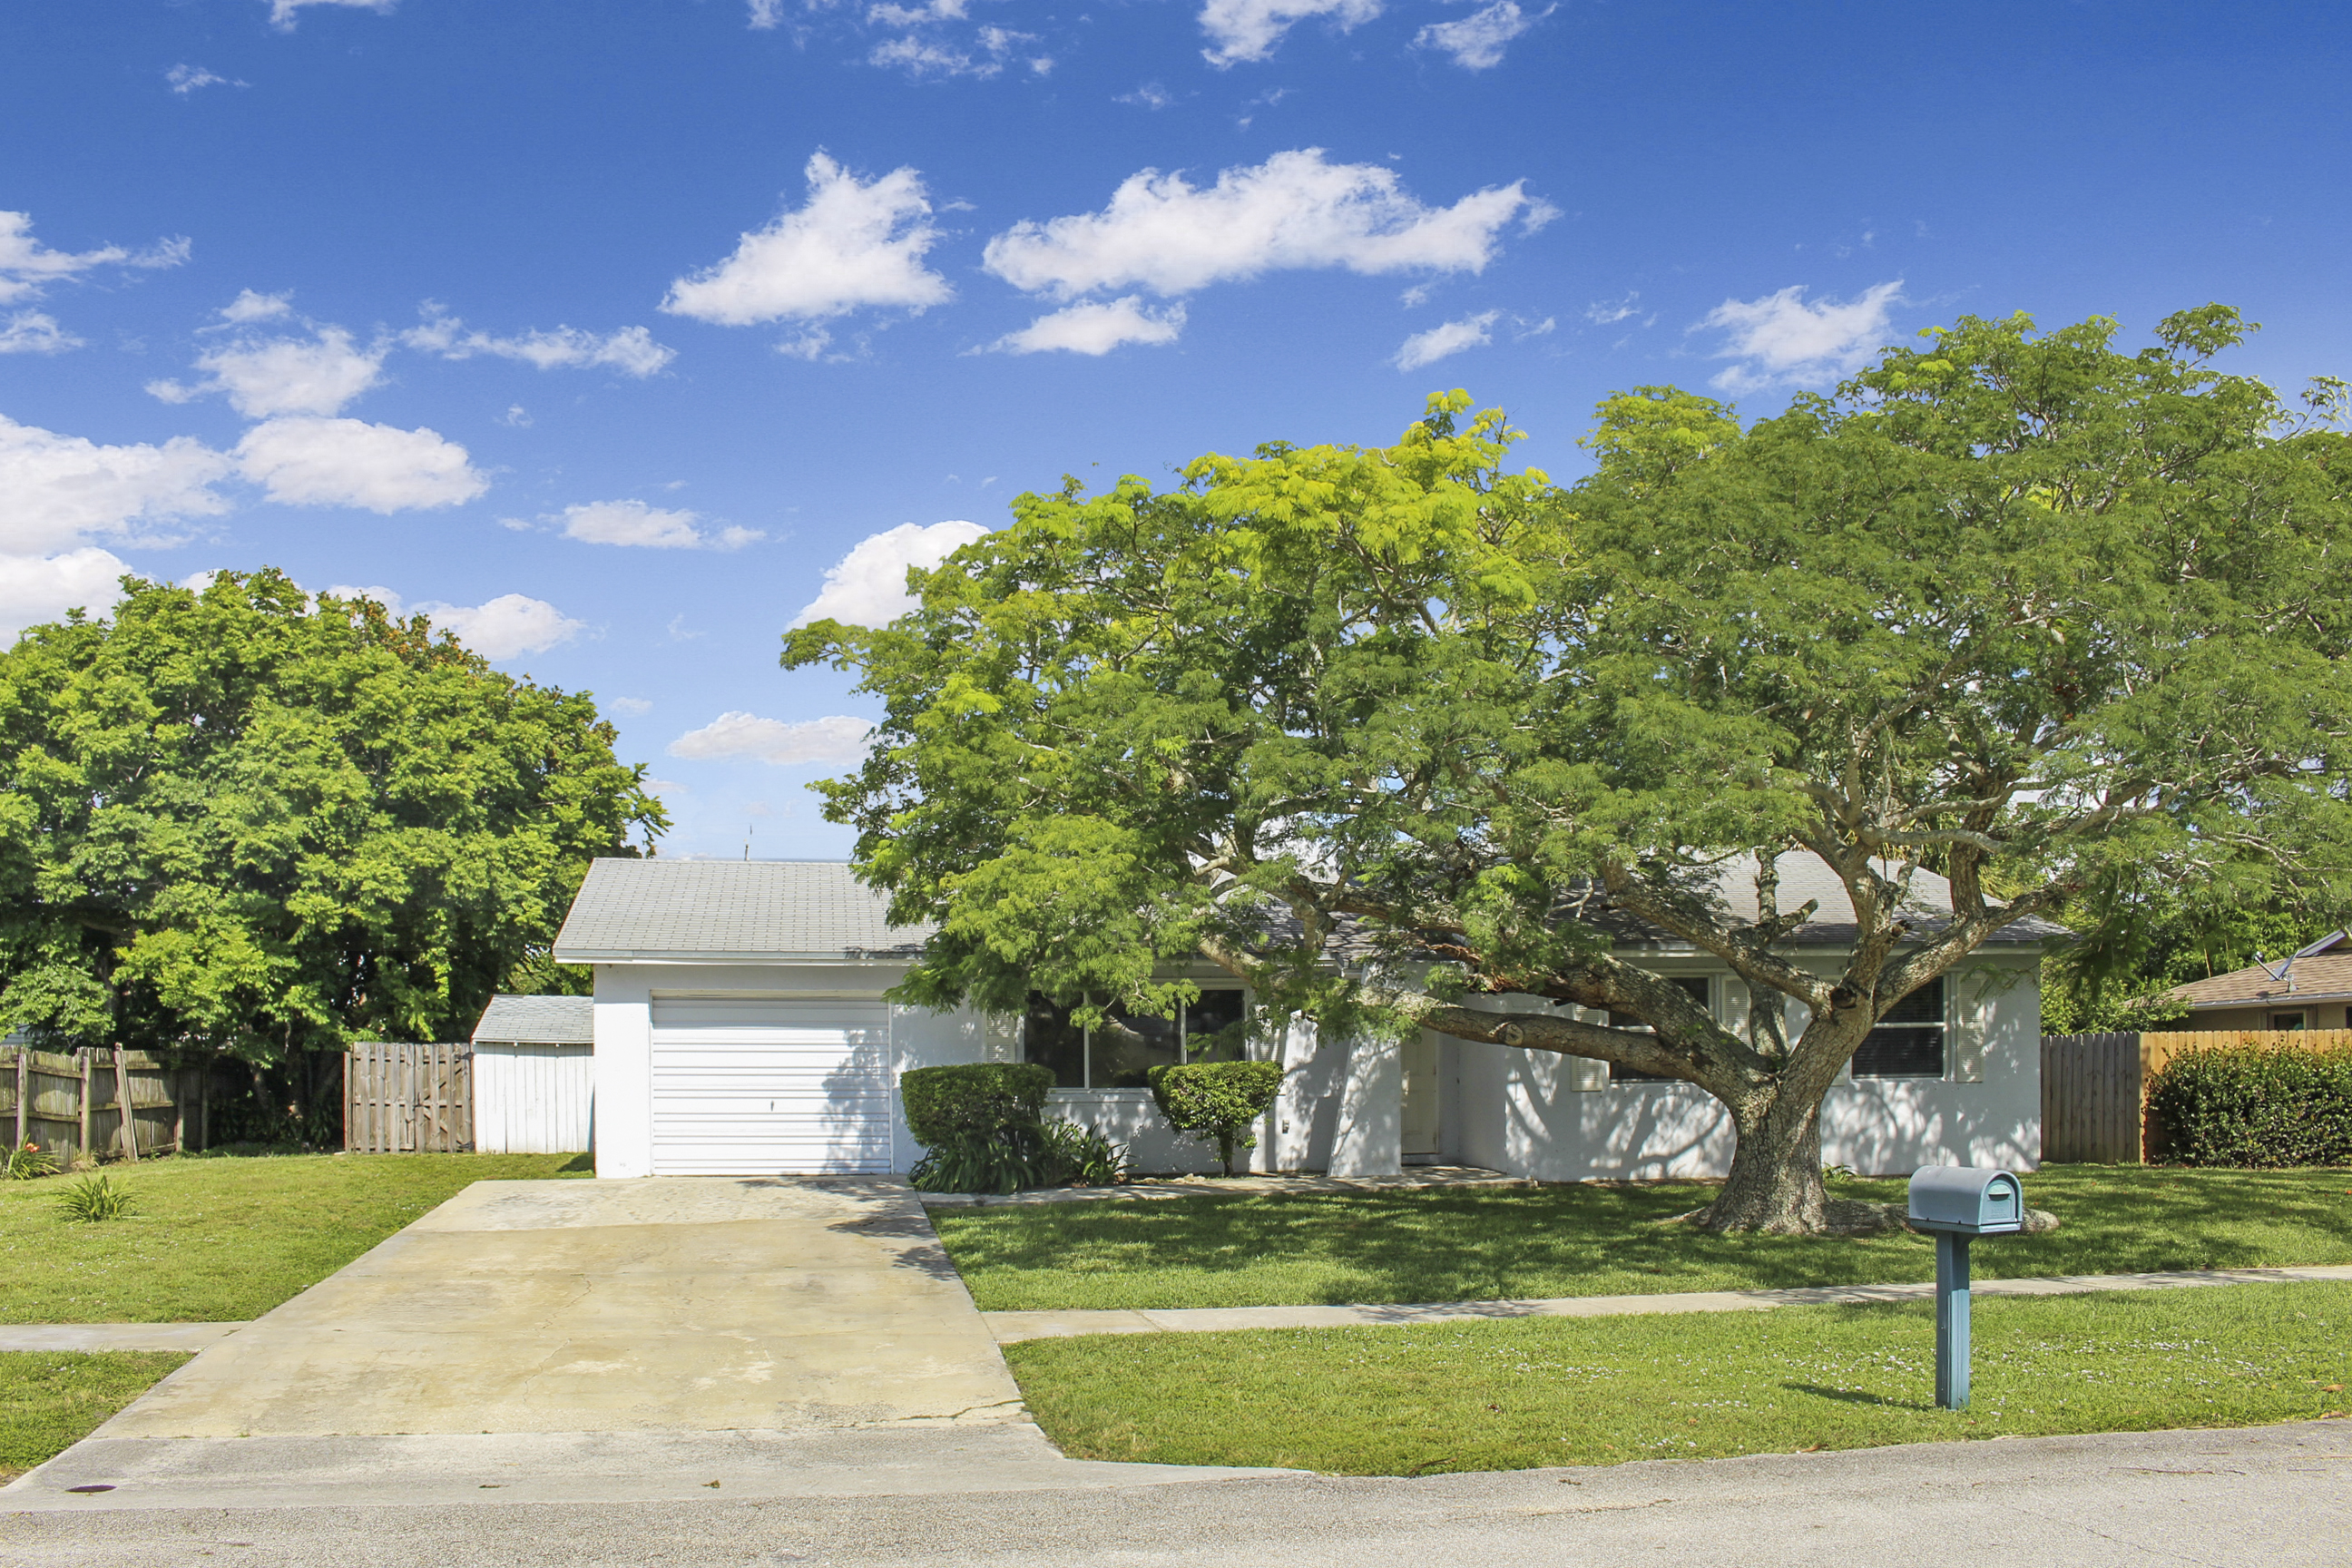 857 Croton Dr, Royal Palm Beach, FL 33411 was sold by top Royal Palm Beach agents in Palm Beach Colony